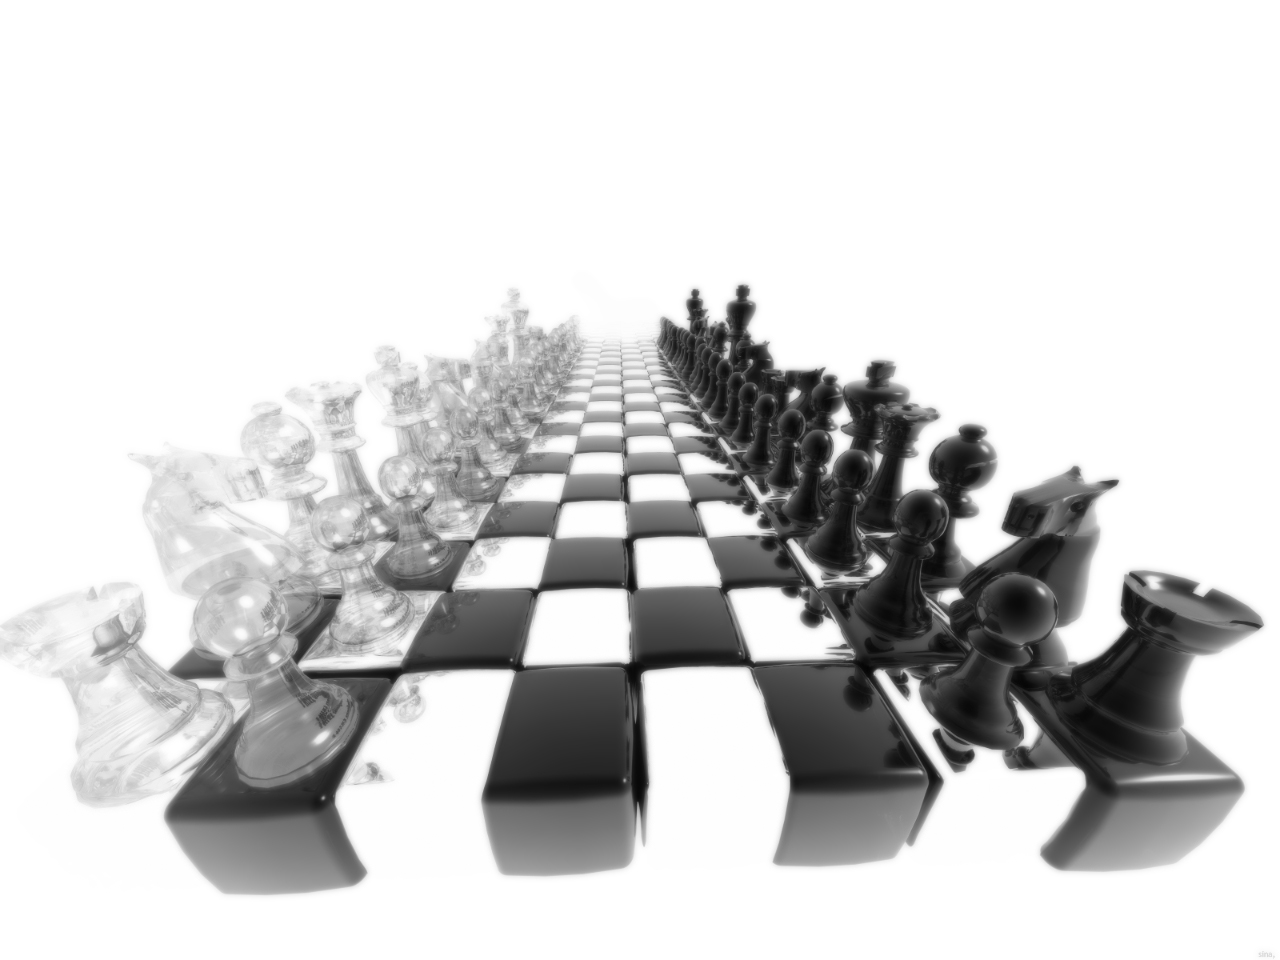 wallpaper best size 3D Black and White Chess wallpaper 1280x960